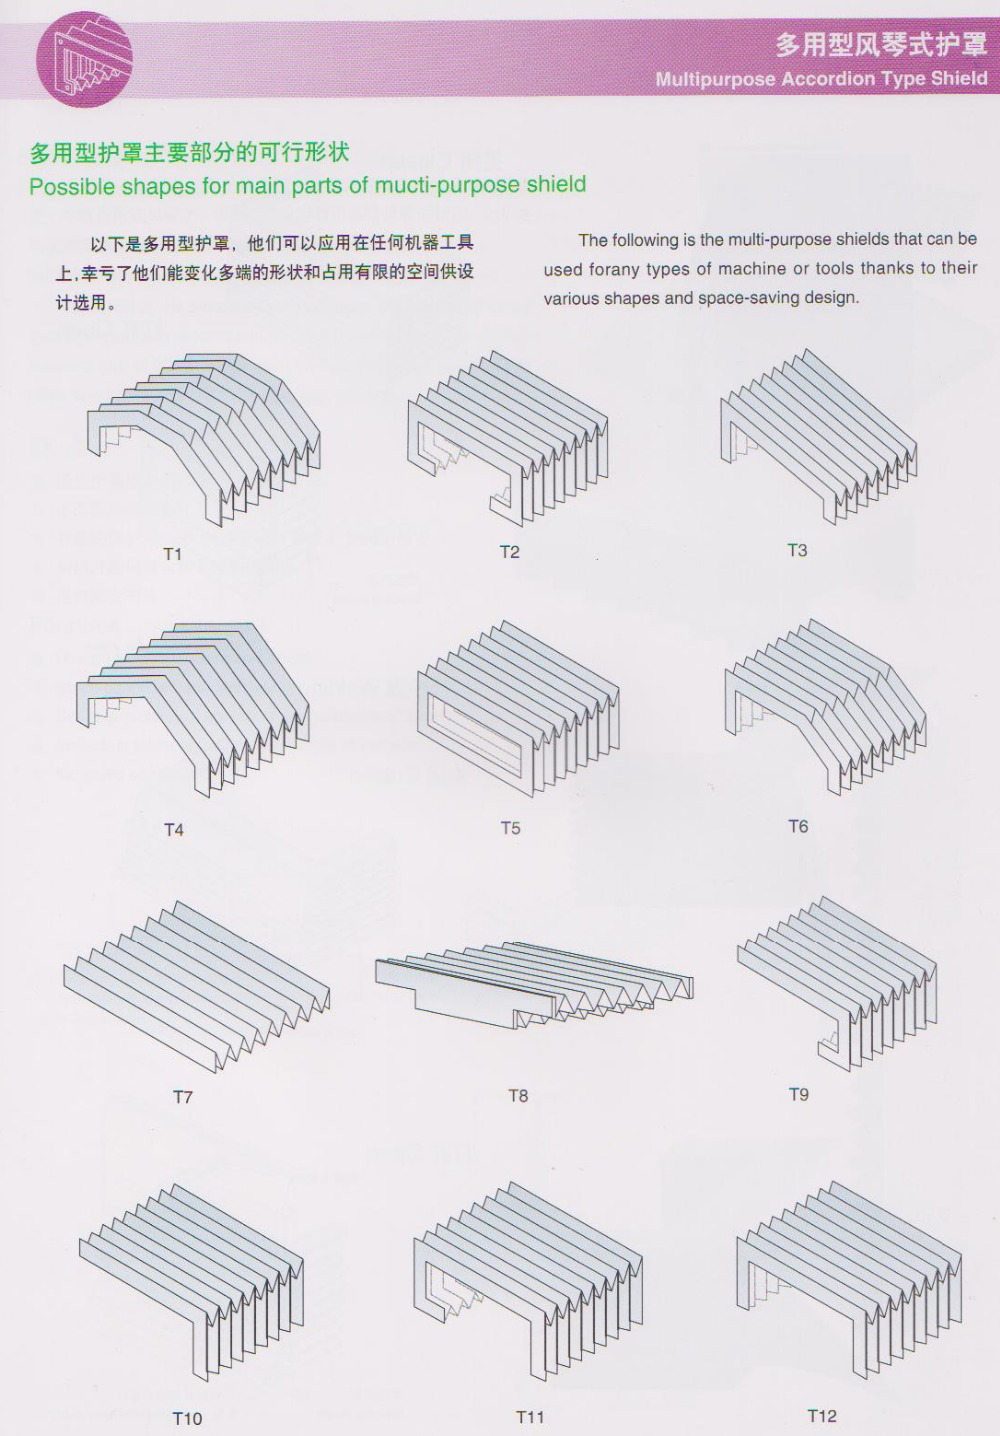 Accordion bellow begining flexible telescopic cover all types for cnc machines